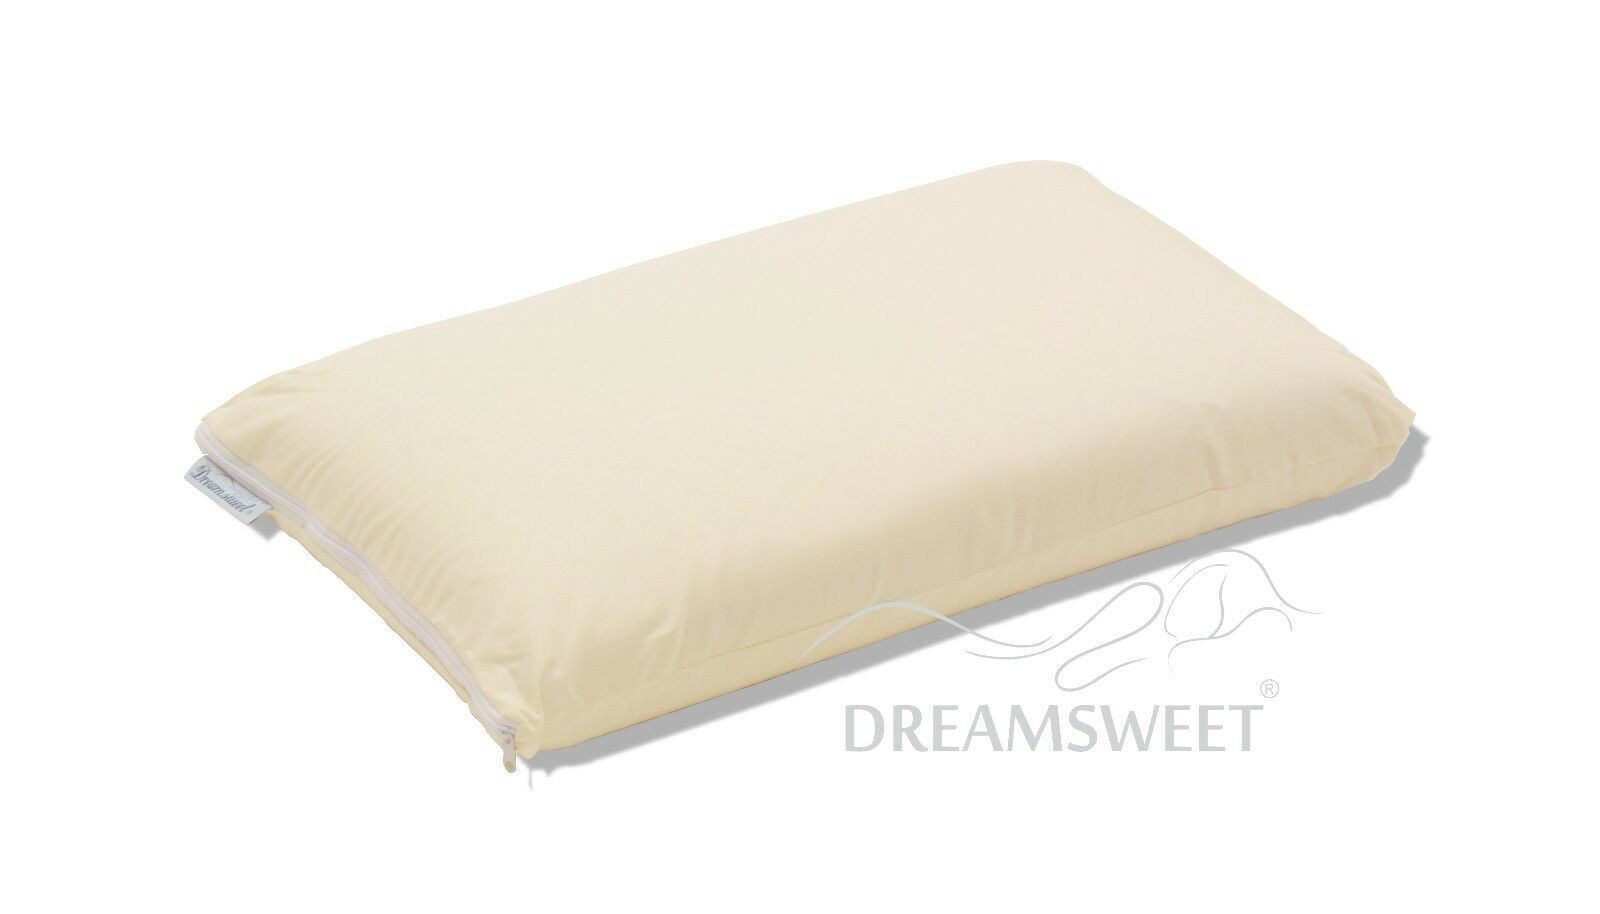 Brazilian Natural Latex Classic Shape Pillow with Cotton Cover, Queen Std